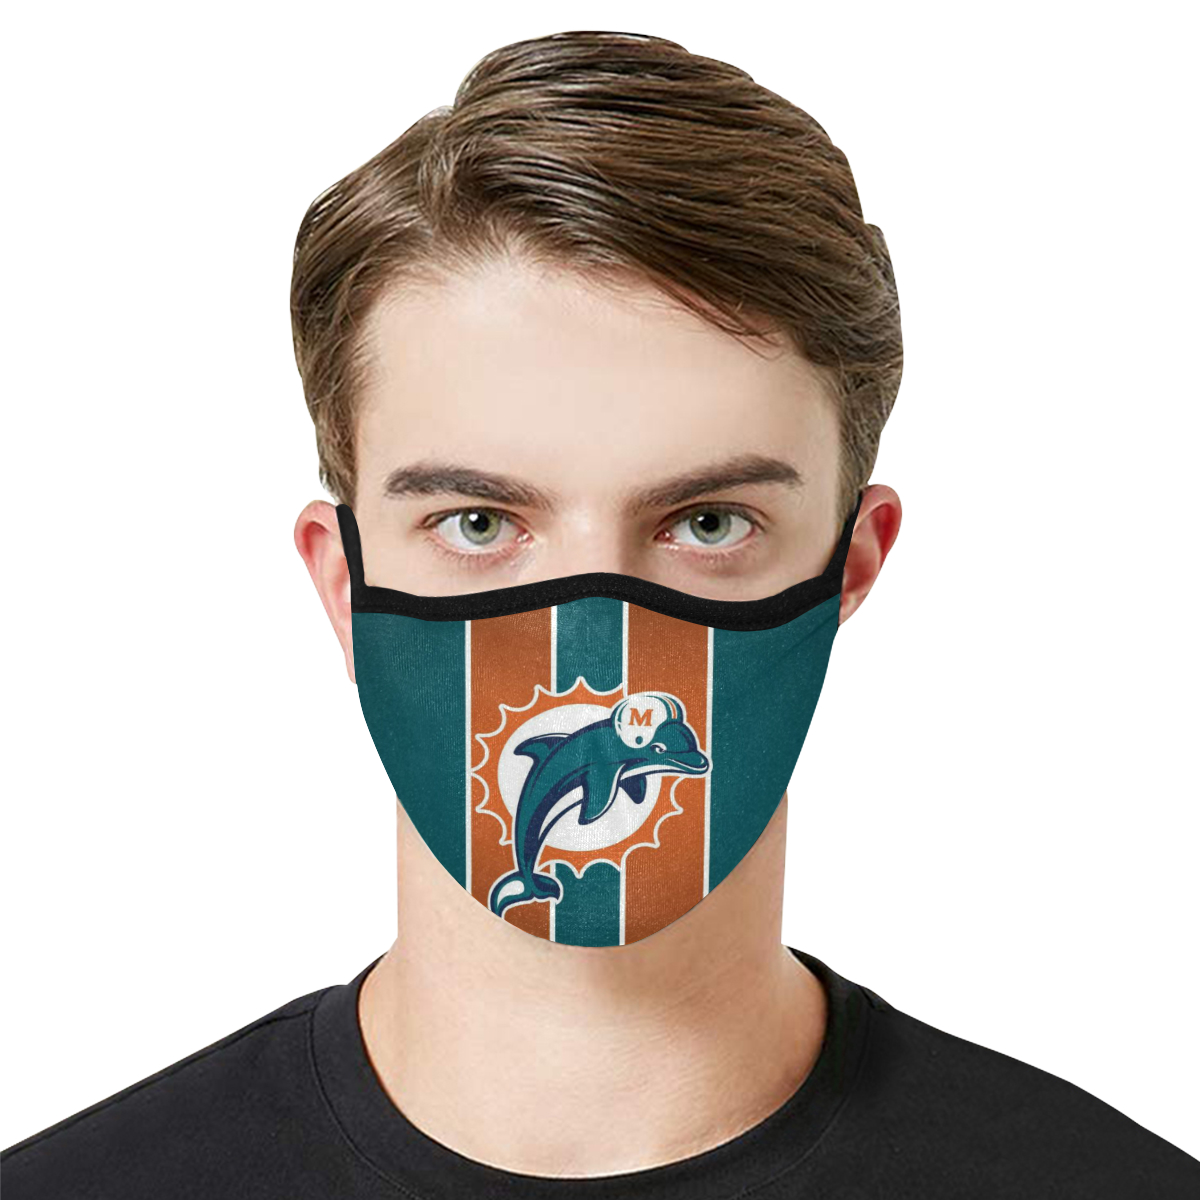 National football league miami dolphins team cotton face mask 1